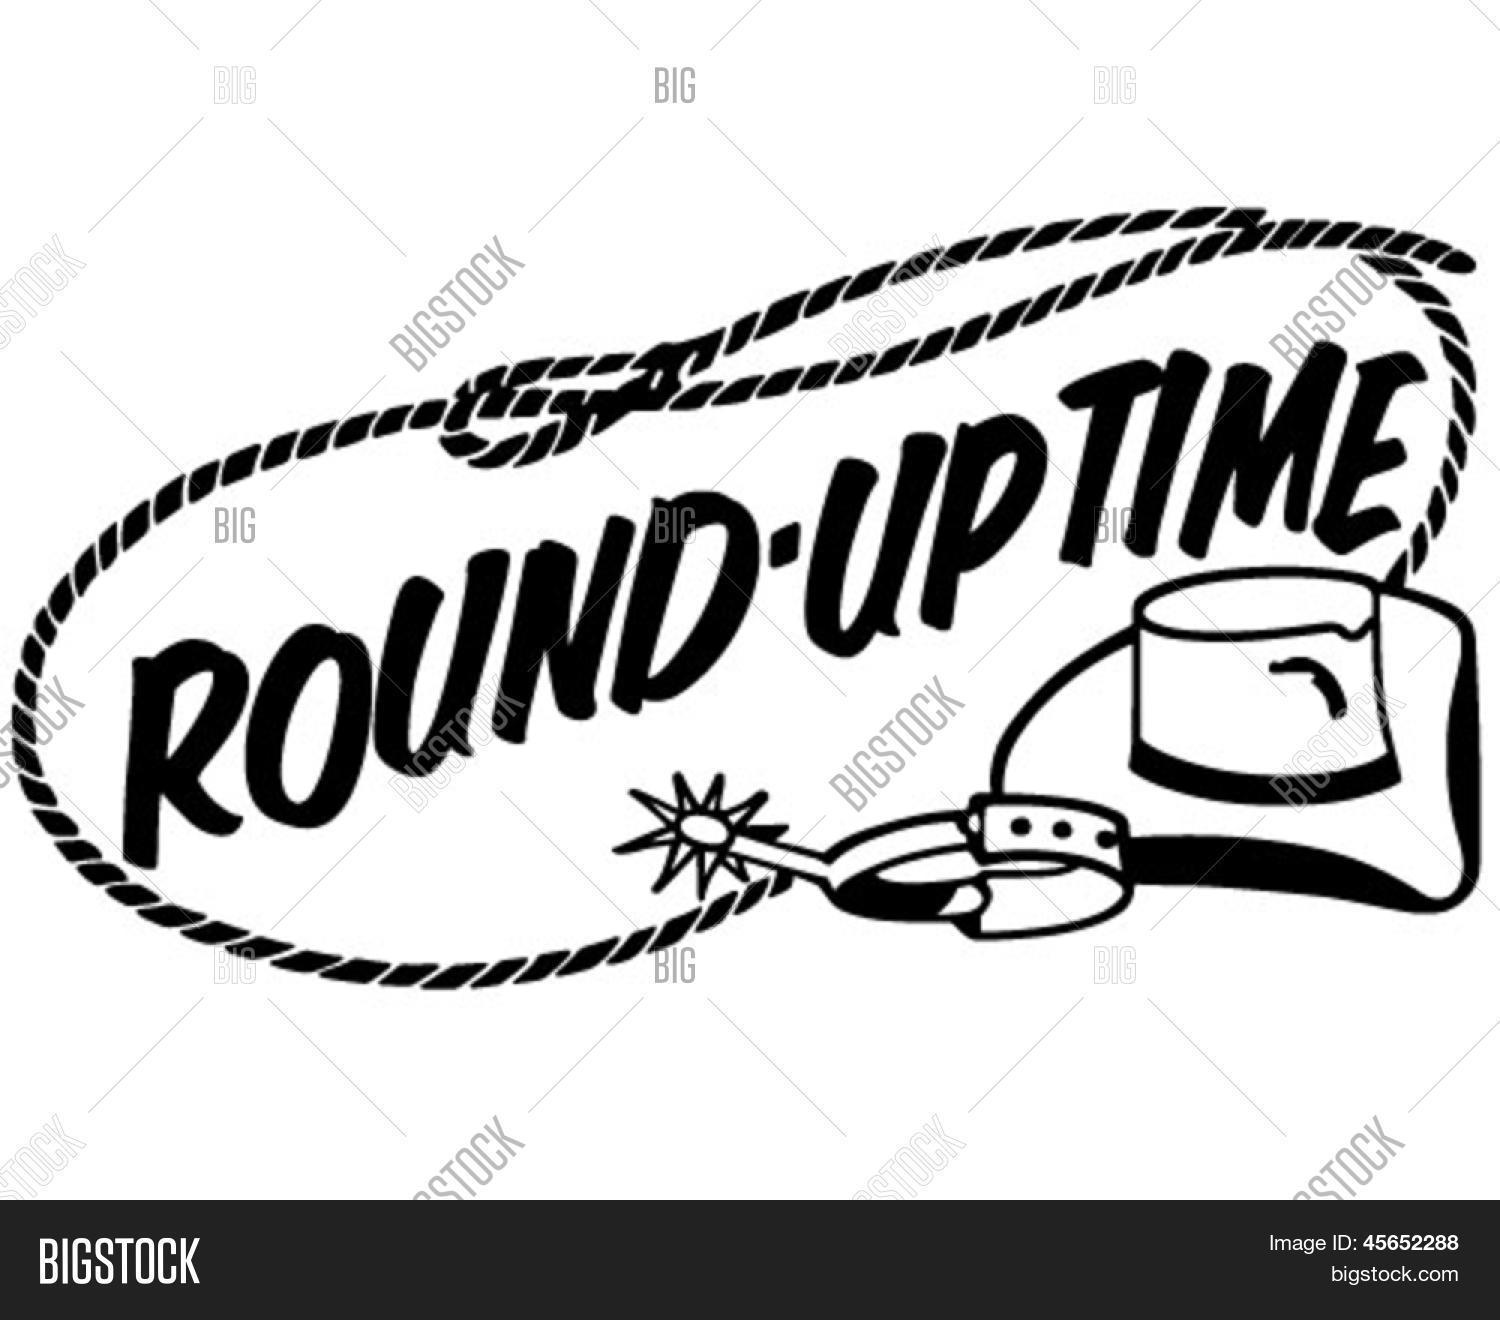 Round Time Banner